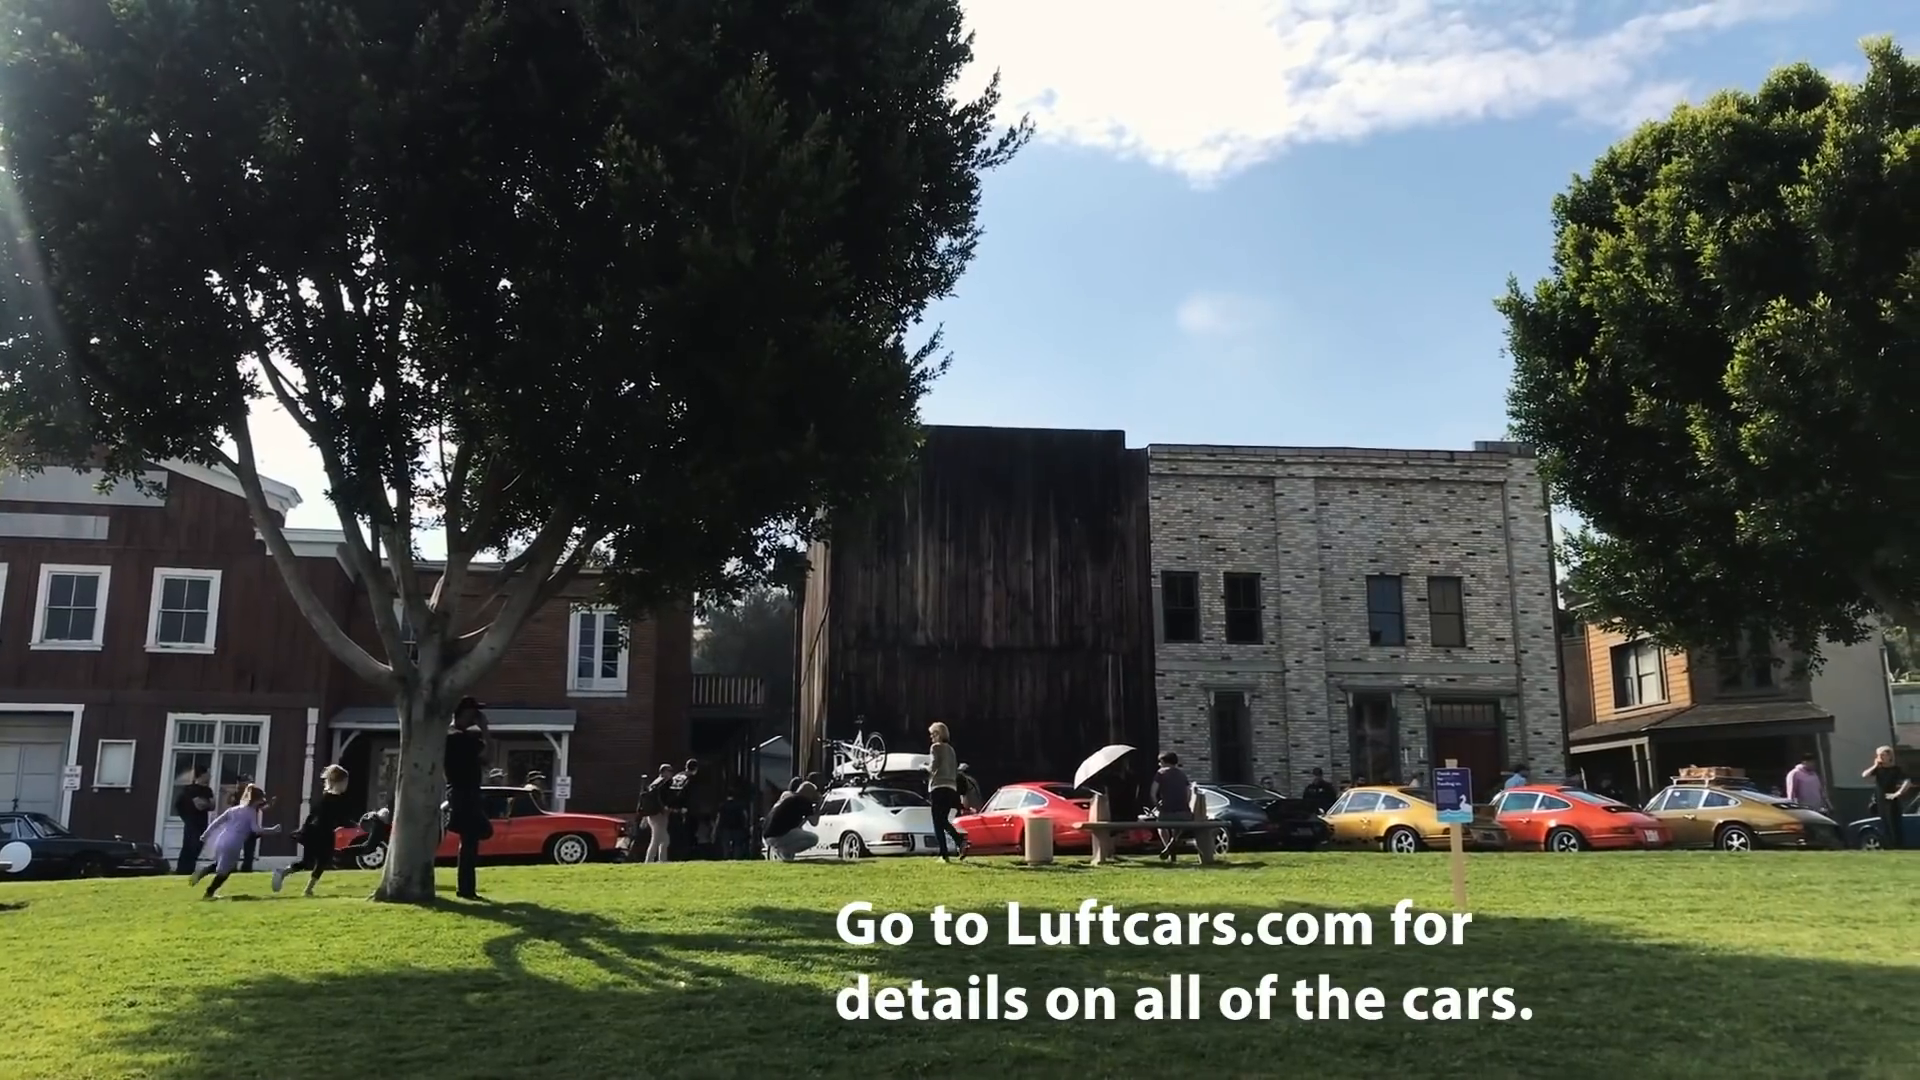 Search all cars from Luft events here.